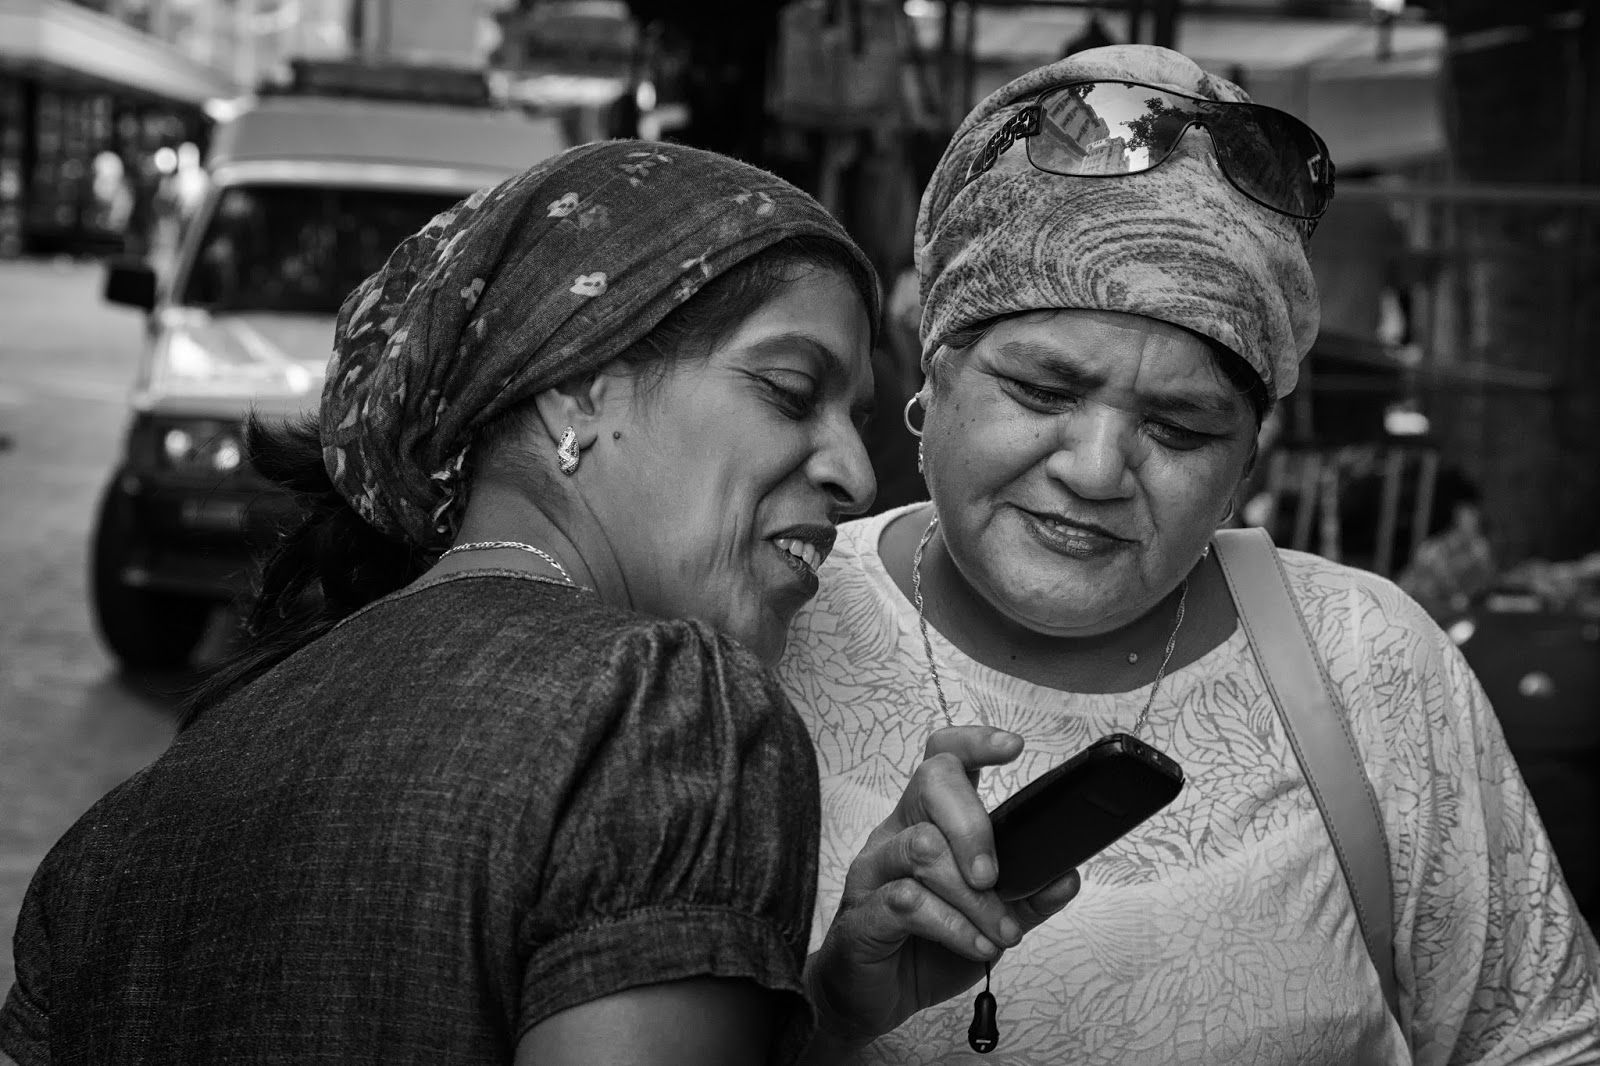 Two women looking at a cell phone in this South African street photograph